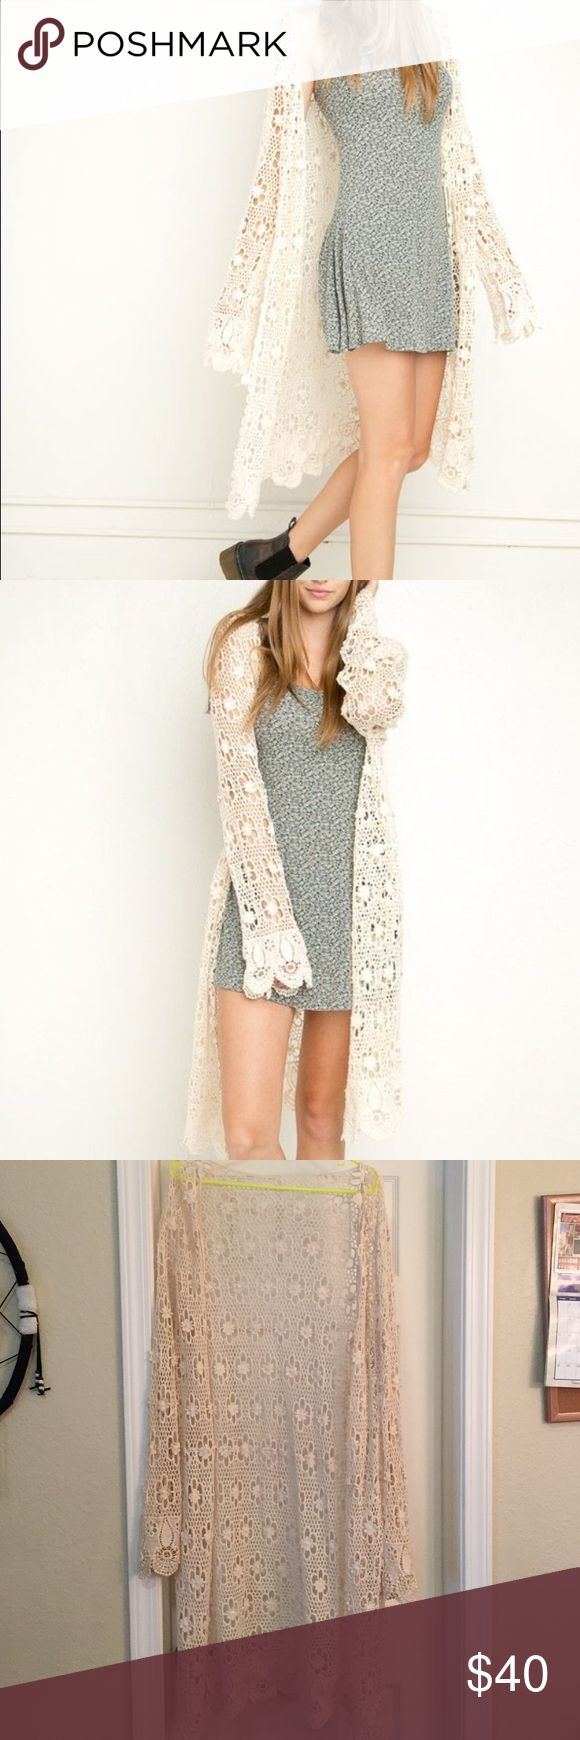 Brandy Melville Cardigan Excellent condition . Worn once Brandy Melville Sweaters Cardigans